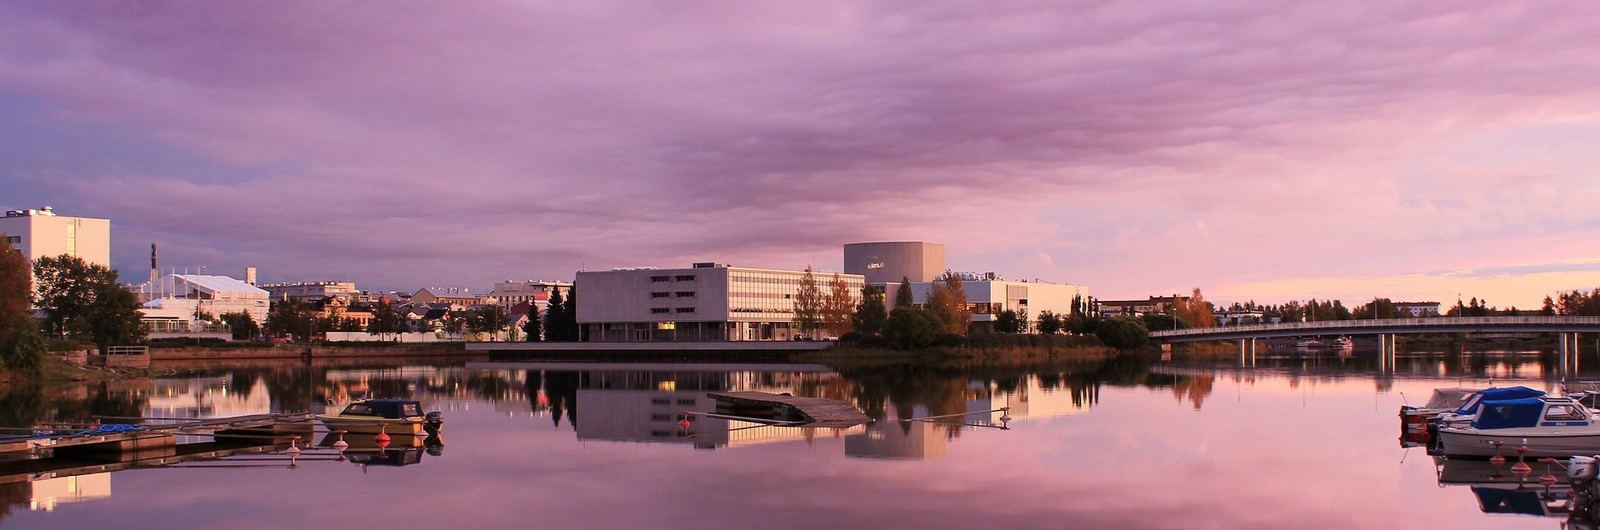 oulu city header